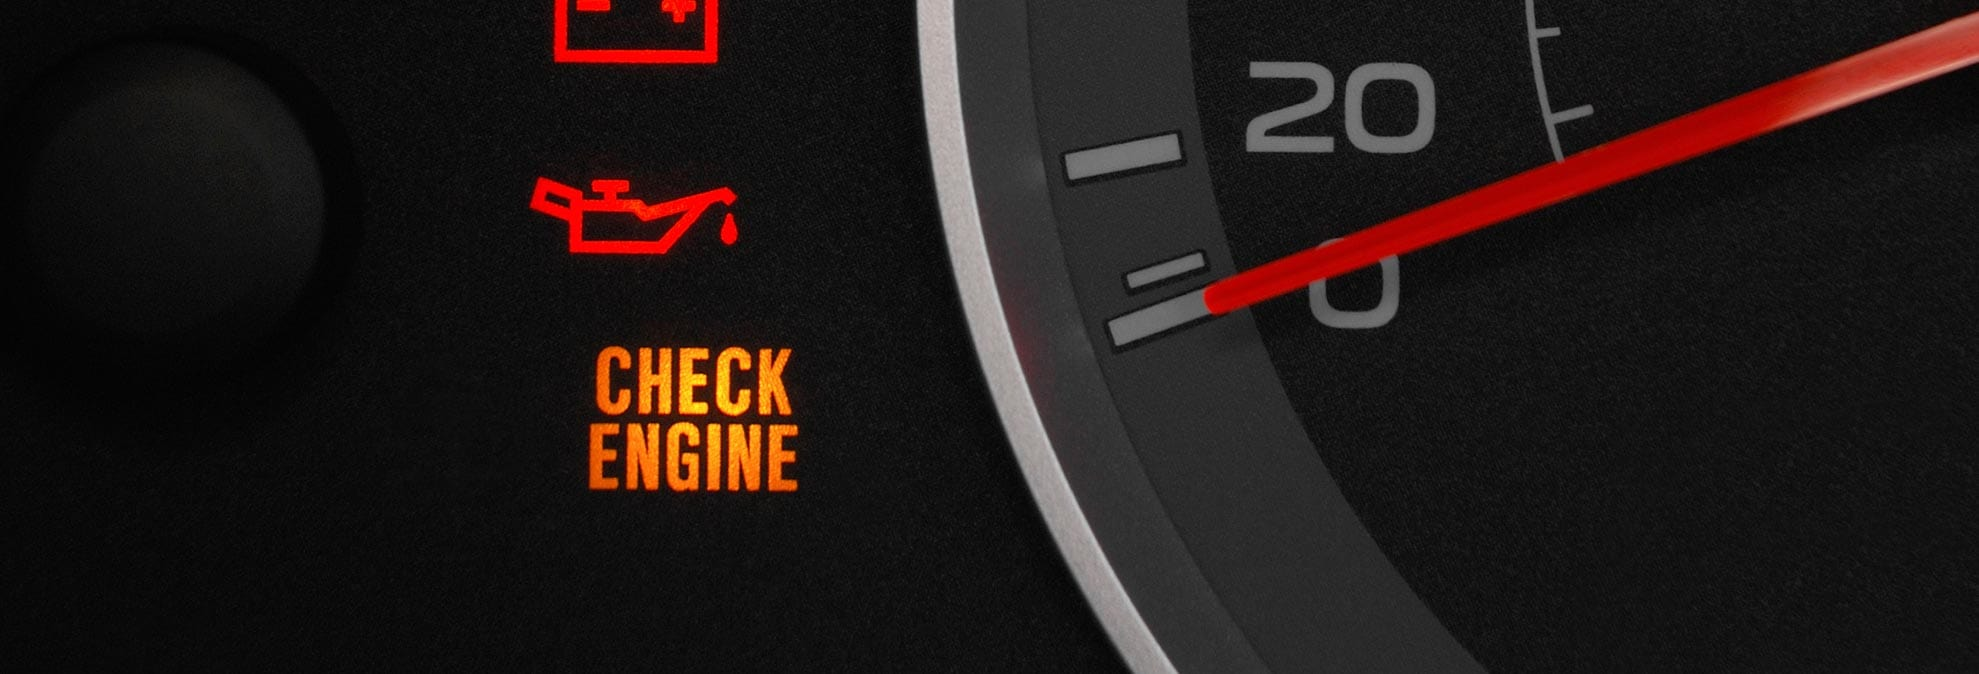 What does the check engine light really mean consumer reports buycottarizona Choice Image